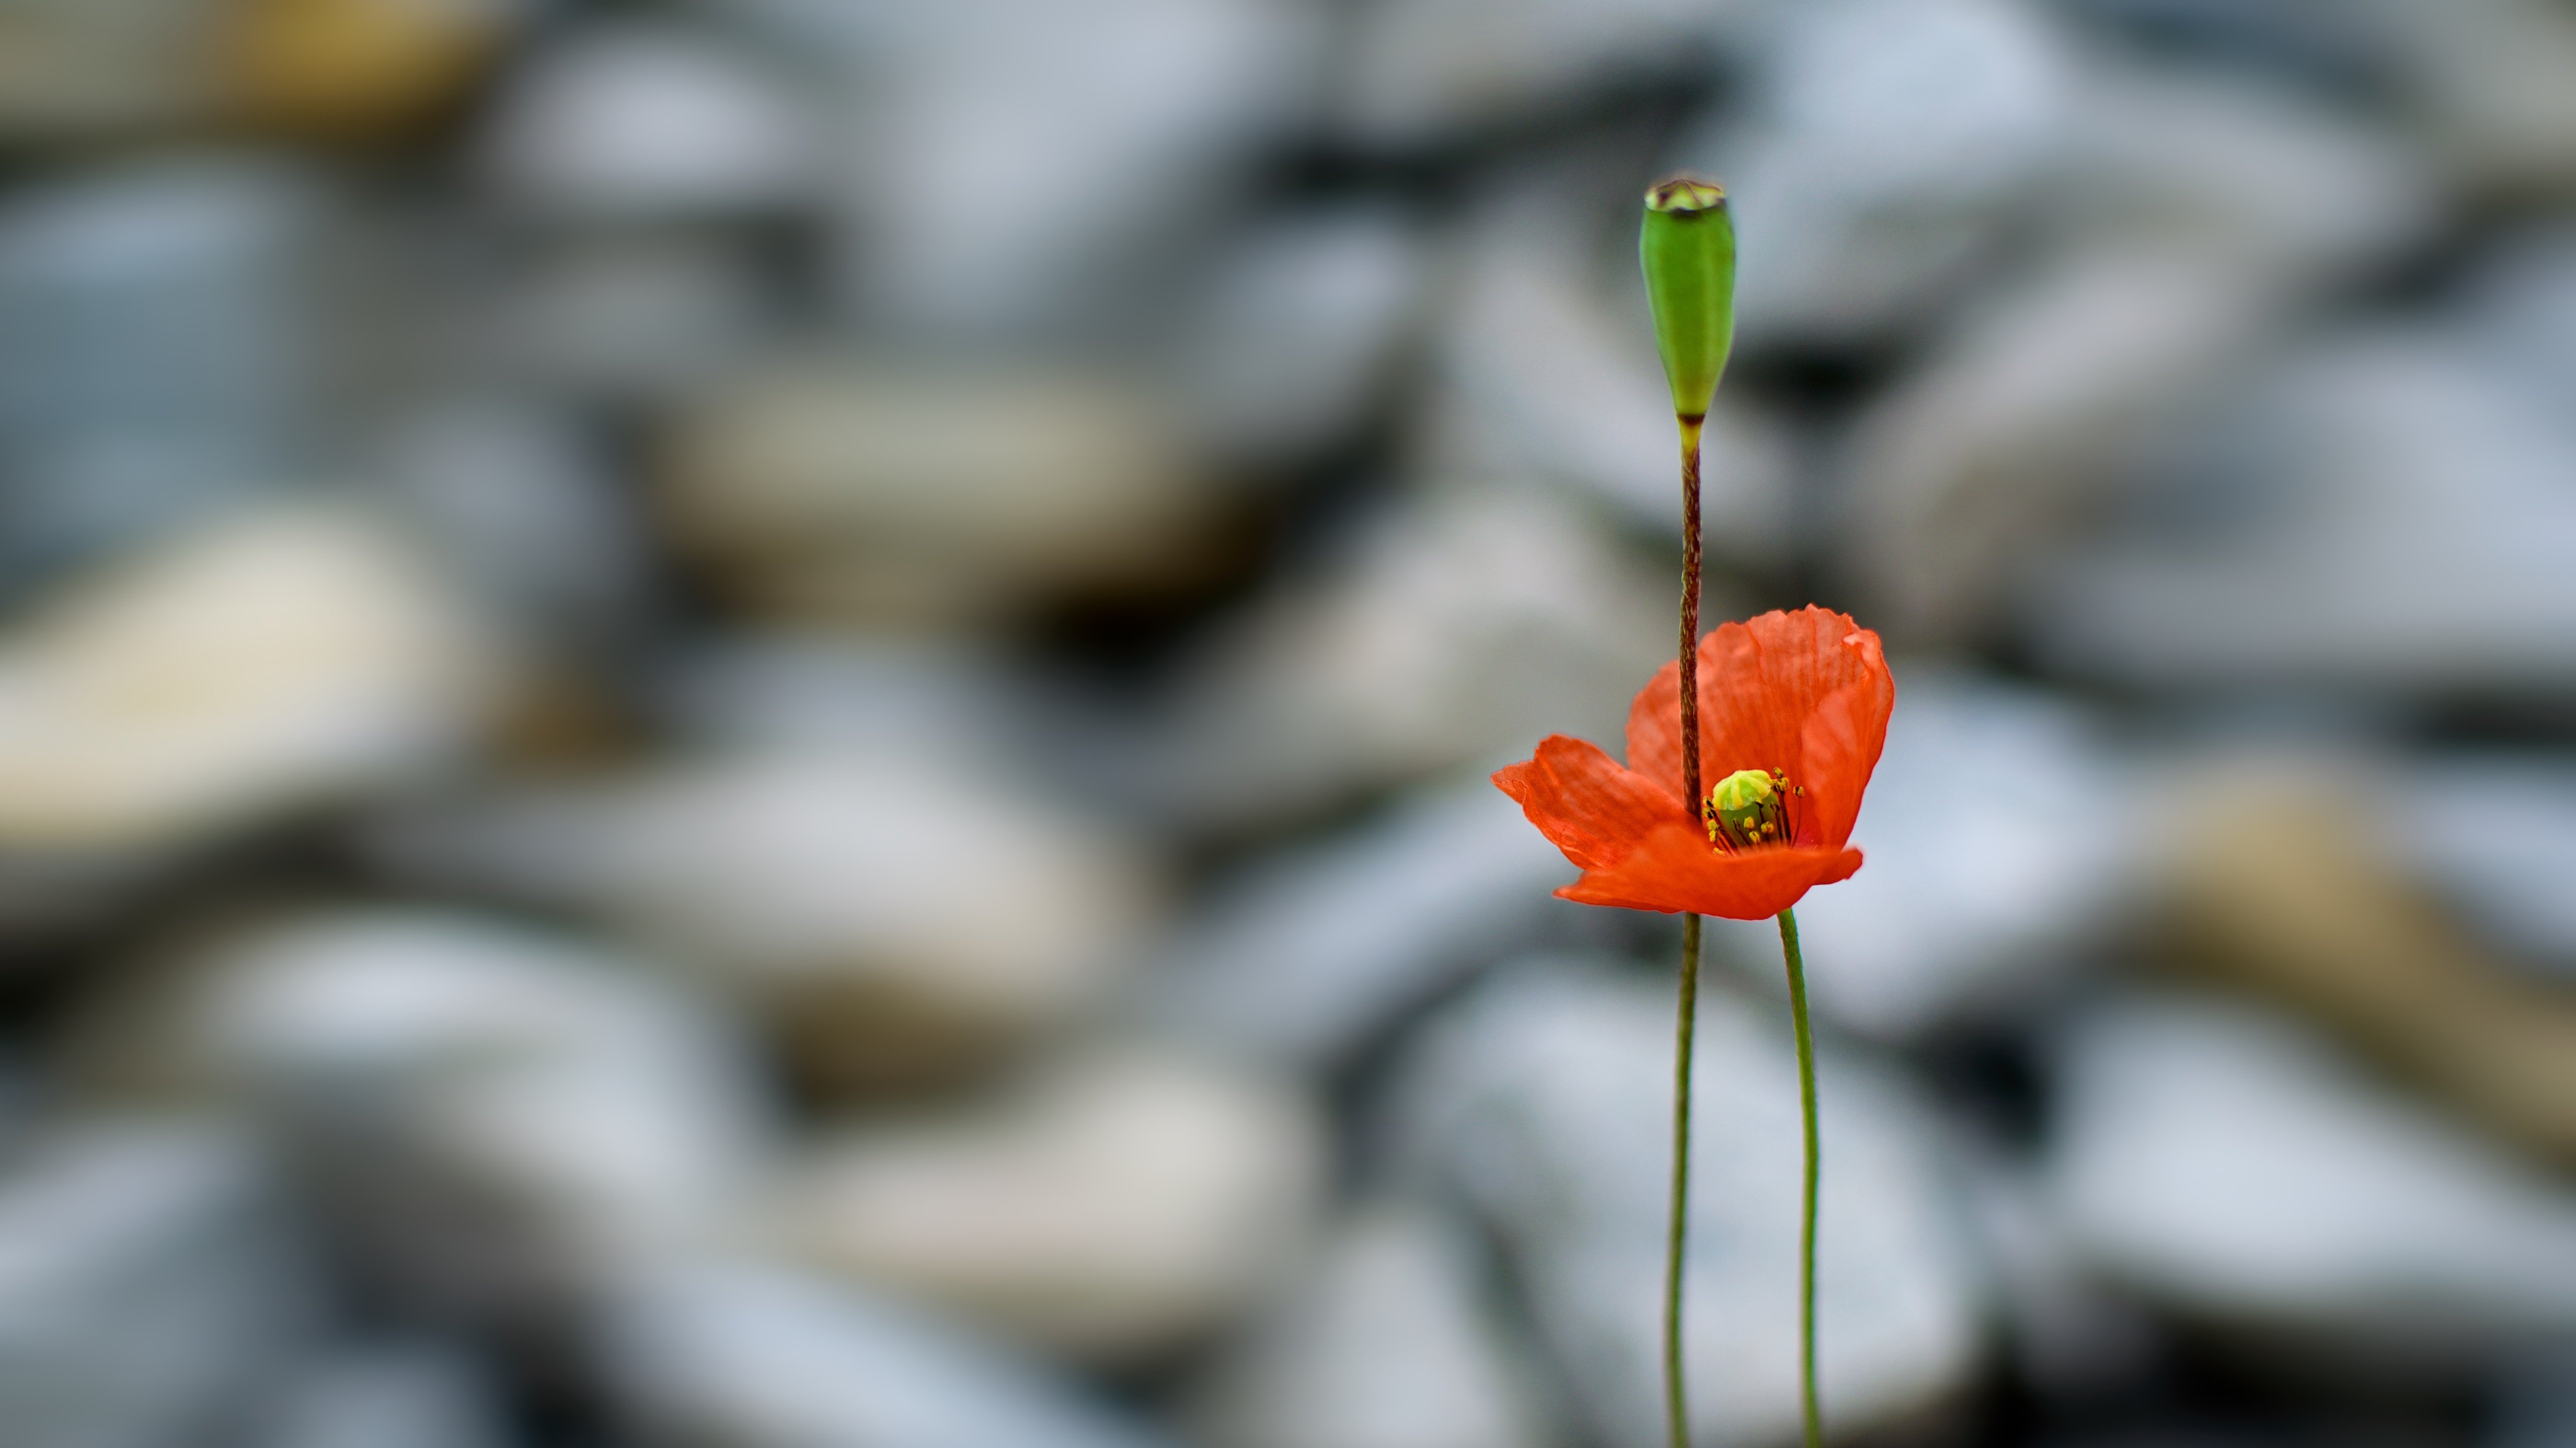 red, outdoor, poppy, estonia, flower, tallinn, bright, capital city, city, city life, close up, colorful, delicate, еurope, nature, simplicity, urban, background, summer, softness, alone, color, grass, light, travel, plant,, Эдуард Горобец